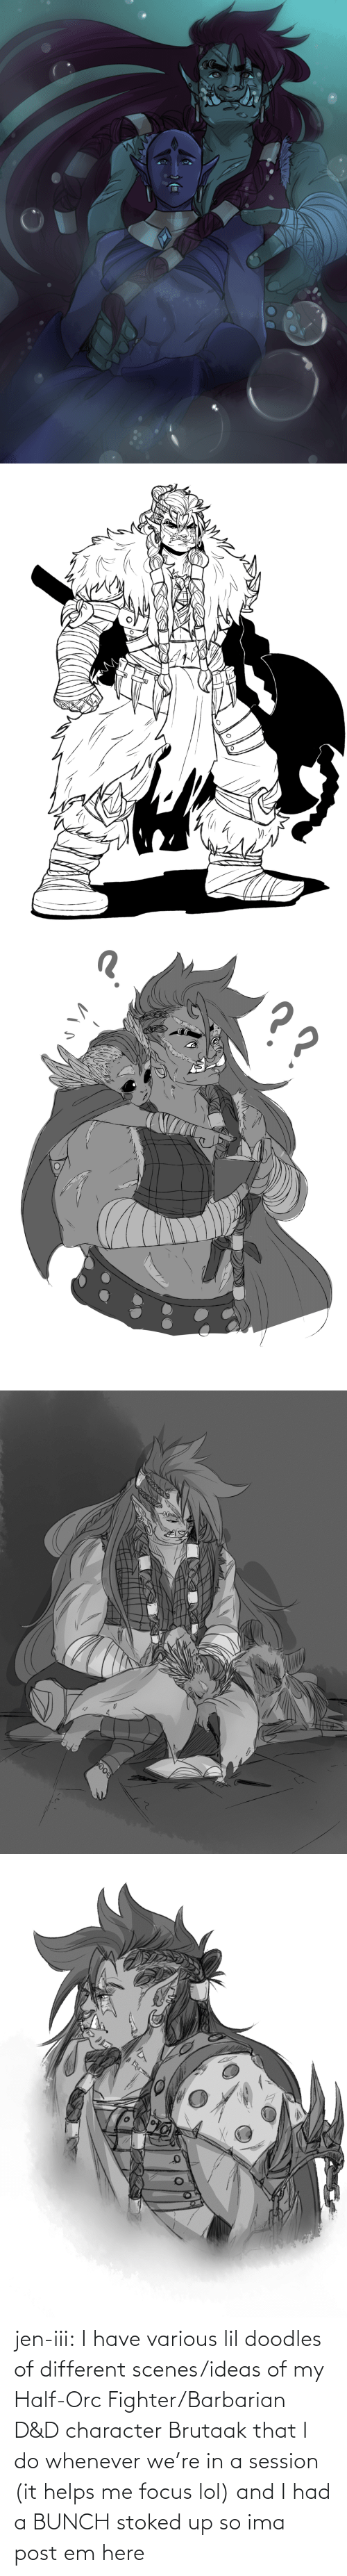 I Had: jen-iii:  I have various lil doodles of different scenes/ideas of my Half-Orc Fighter/Barbarian D&D character Brutaak that I do whenever we're in a session (it helps me focus lol) and I had a BUNCH stoked up so ima post em here